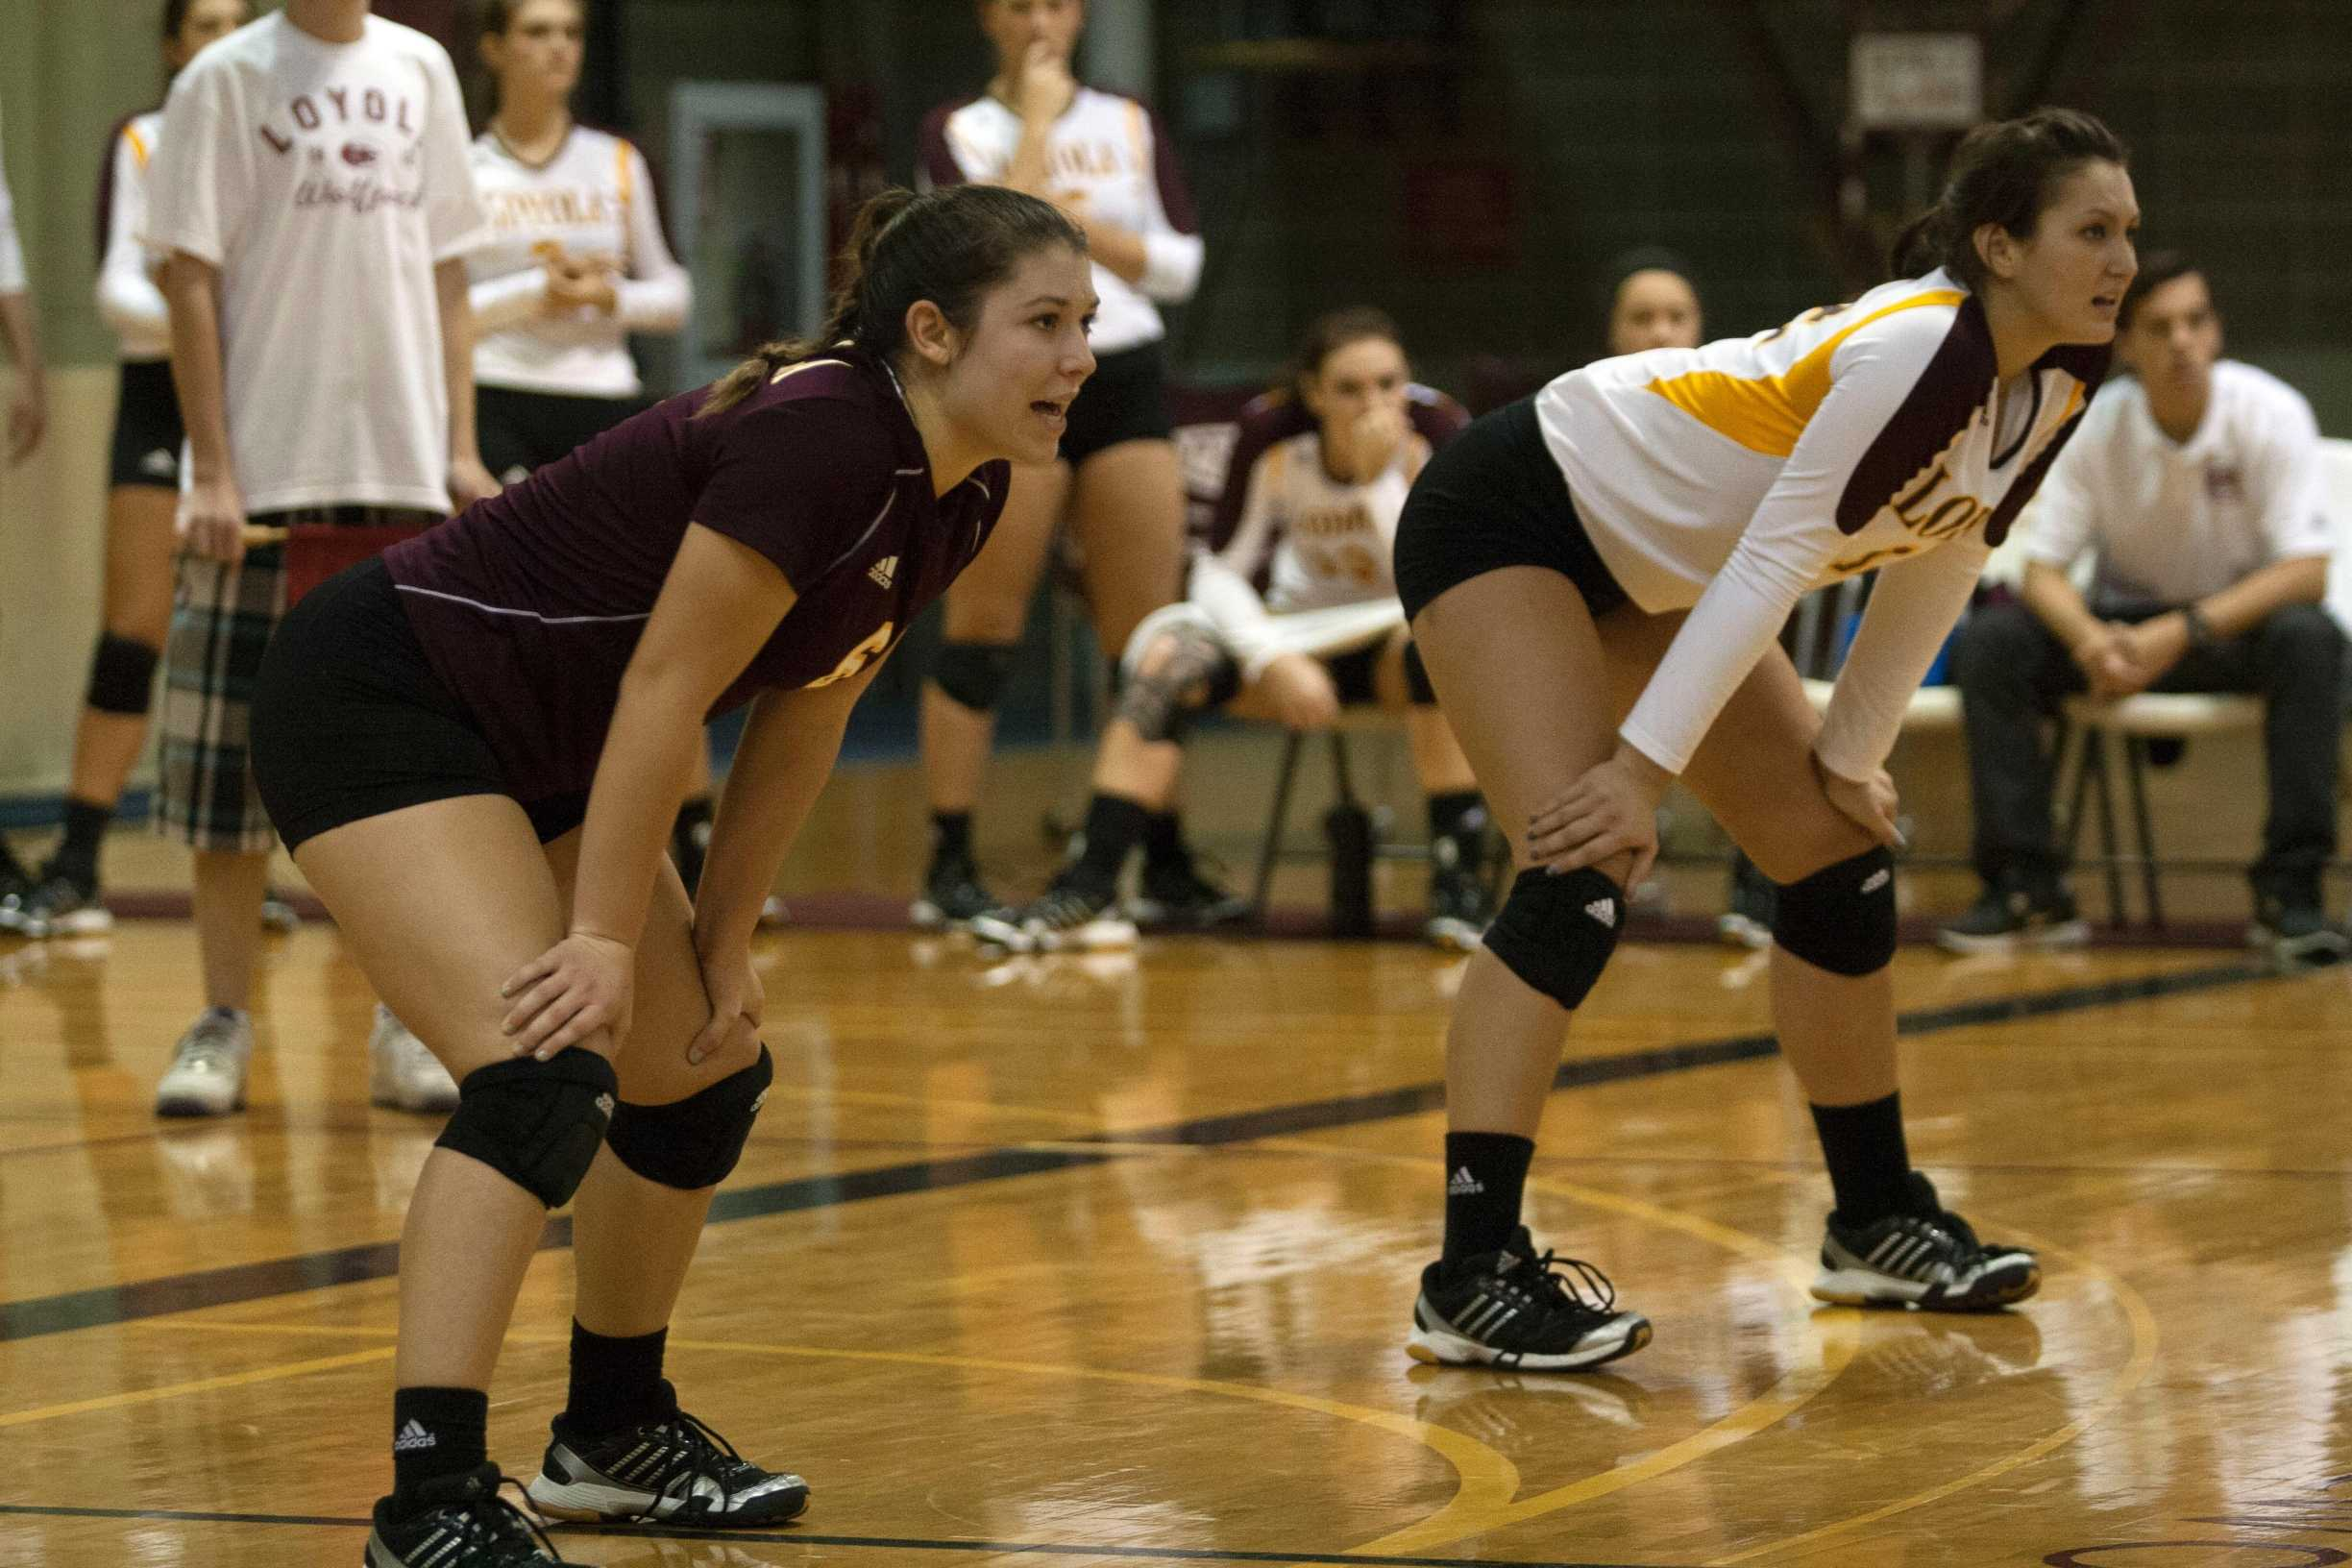 (Left to right) Environmental business junior and libero Becca Burnett and general studies business sophomore and outside hitter Katie Hamilton prepare to defend a serve in a game against Spring Hill College last season. Loyola lost to Spring Hill in straight sets in this season's match up.